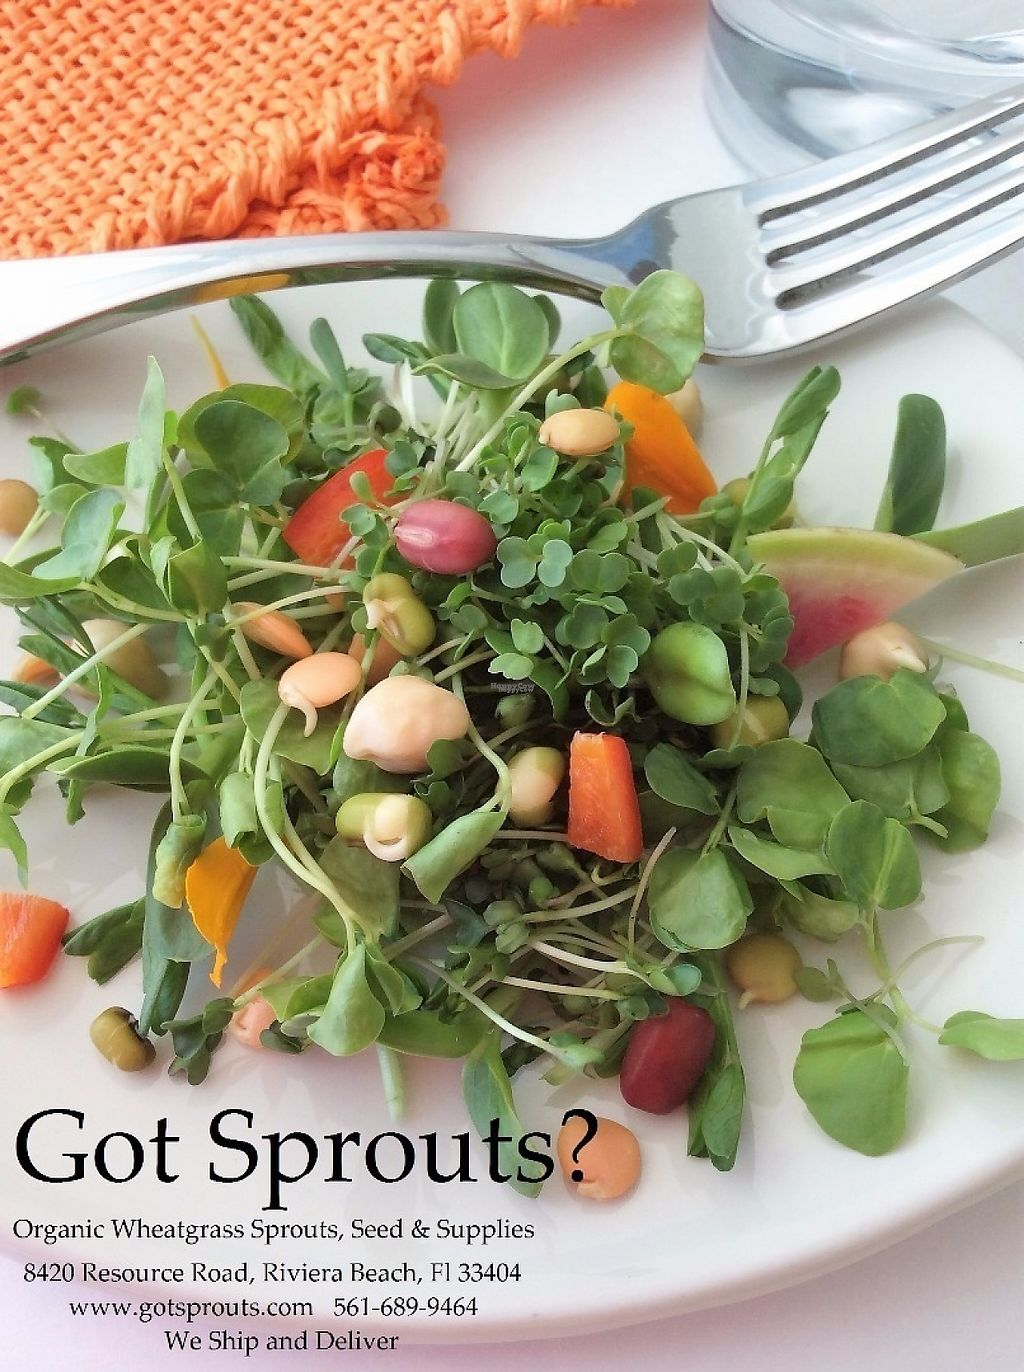 """Photo of Got Sprouts  by <a href=""""/members/profile/hellogotsprouts"""">hellogotsprouts</a> <br/>Find incredible fresh, delicious, organic sprouts here <br/> January 26, 2017  - <a href='/contact/abuse/image/45032/217204'>Report</a>"""